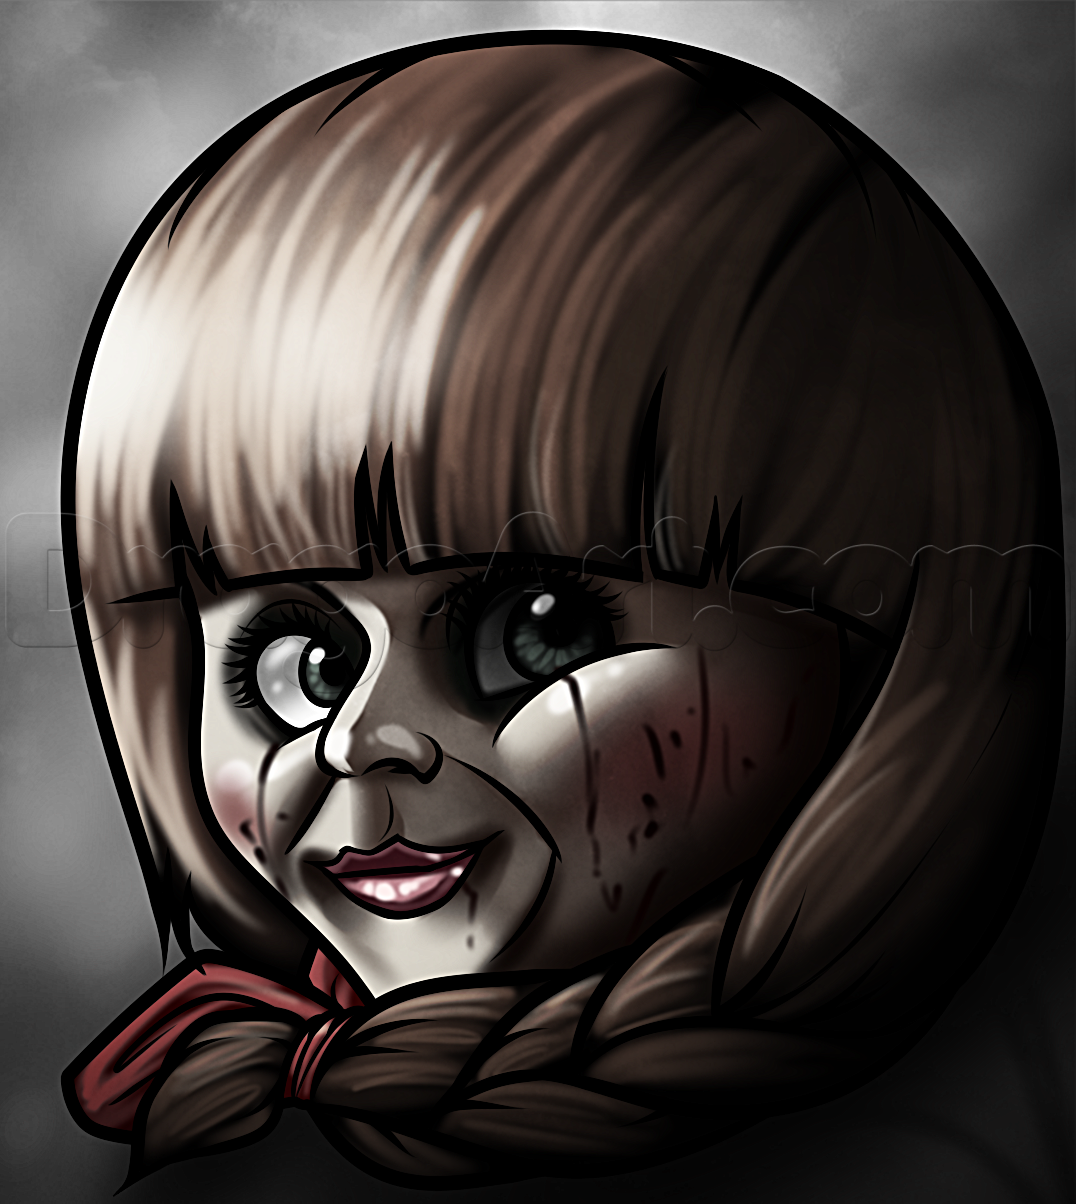 Drawn dall horror doll #1